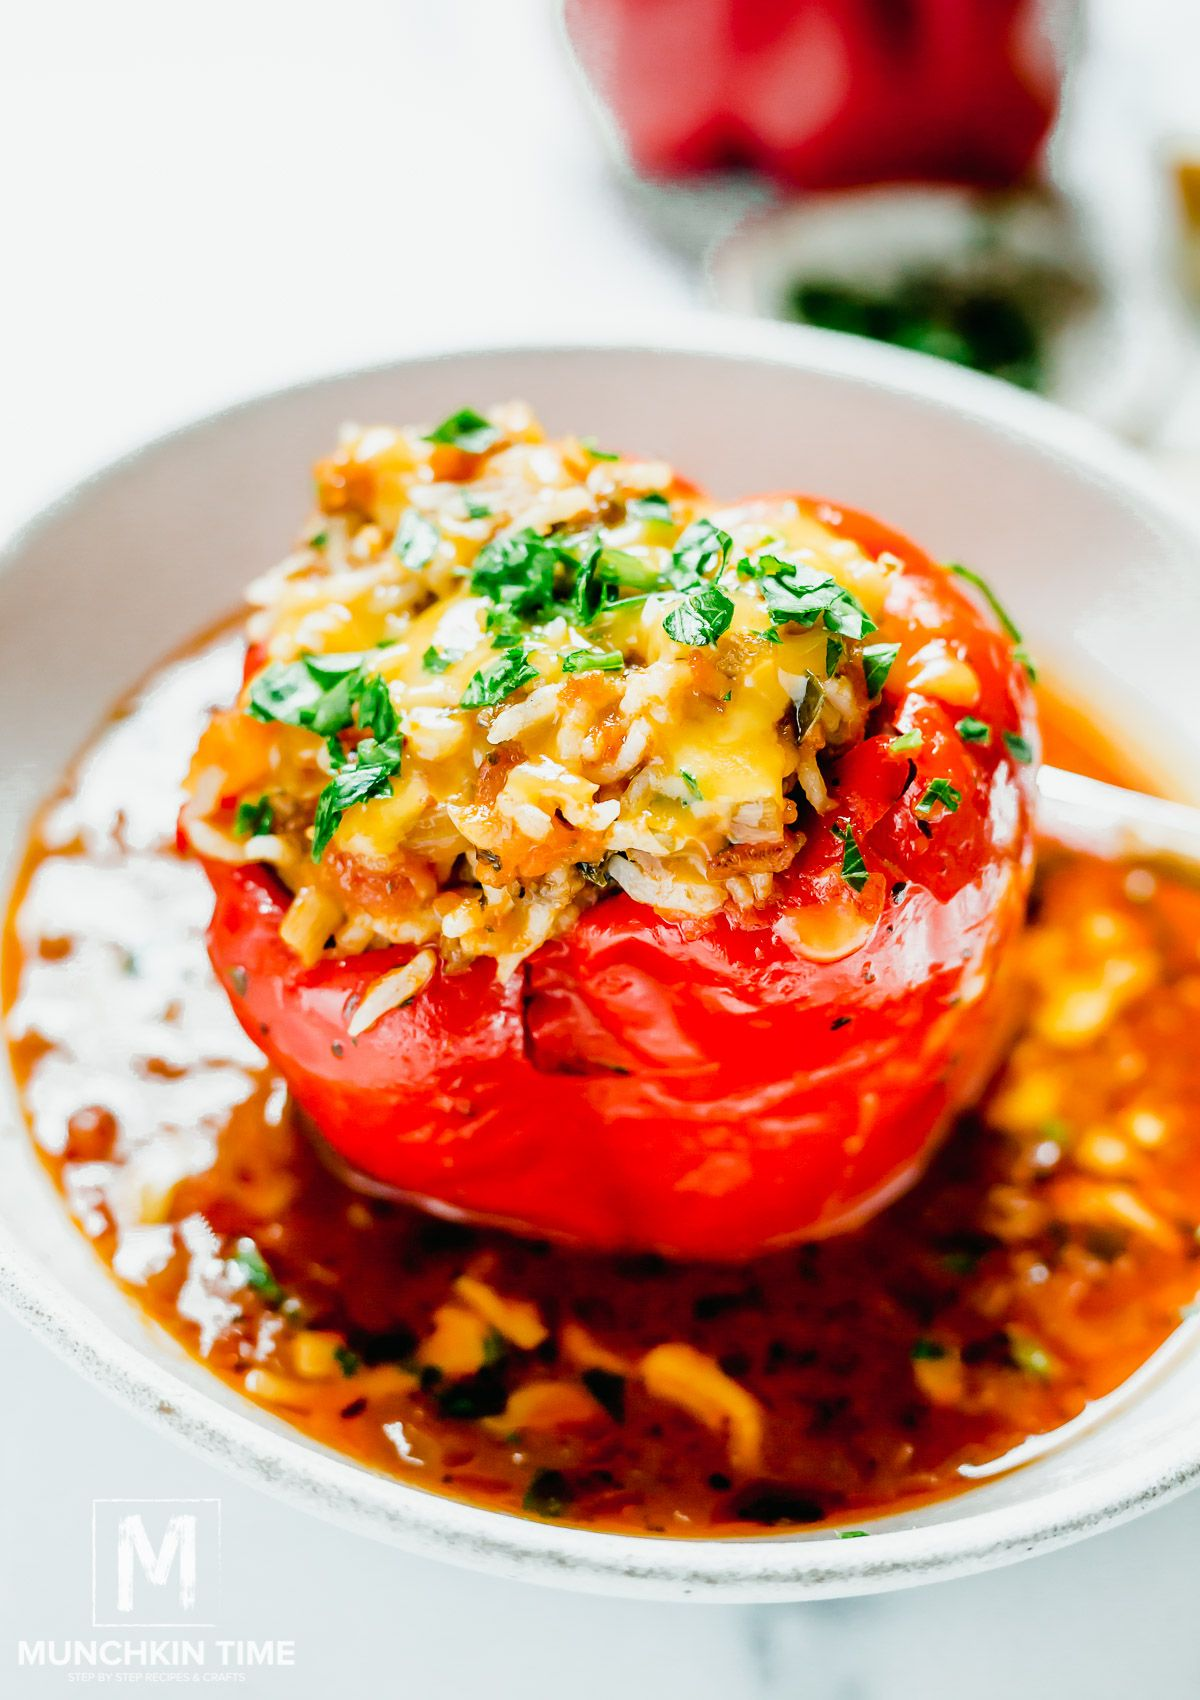 Stuffed Bell Peppers Instant Pot In 2020 Stuffed Peppers Homemade Beef Broth How To Cook Rice